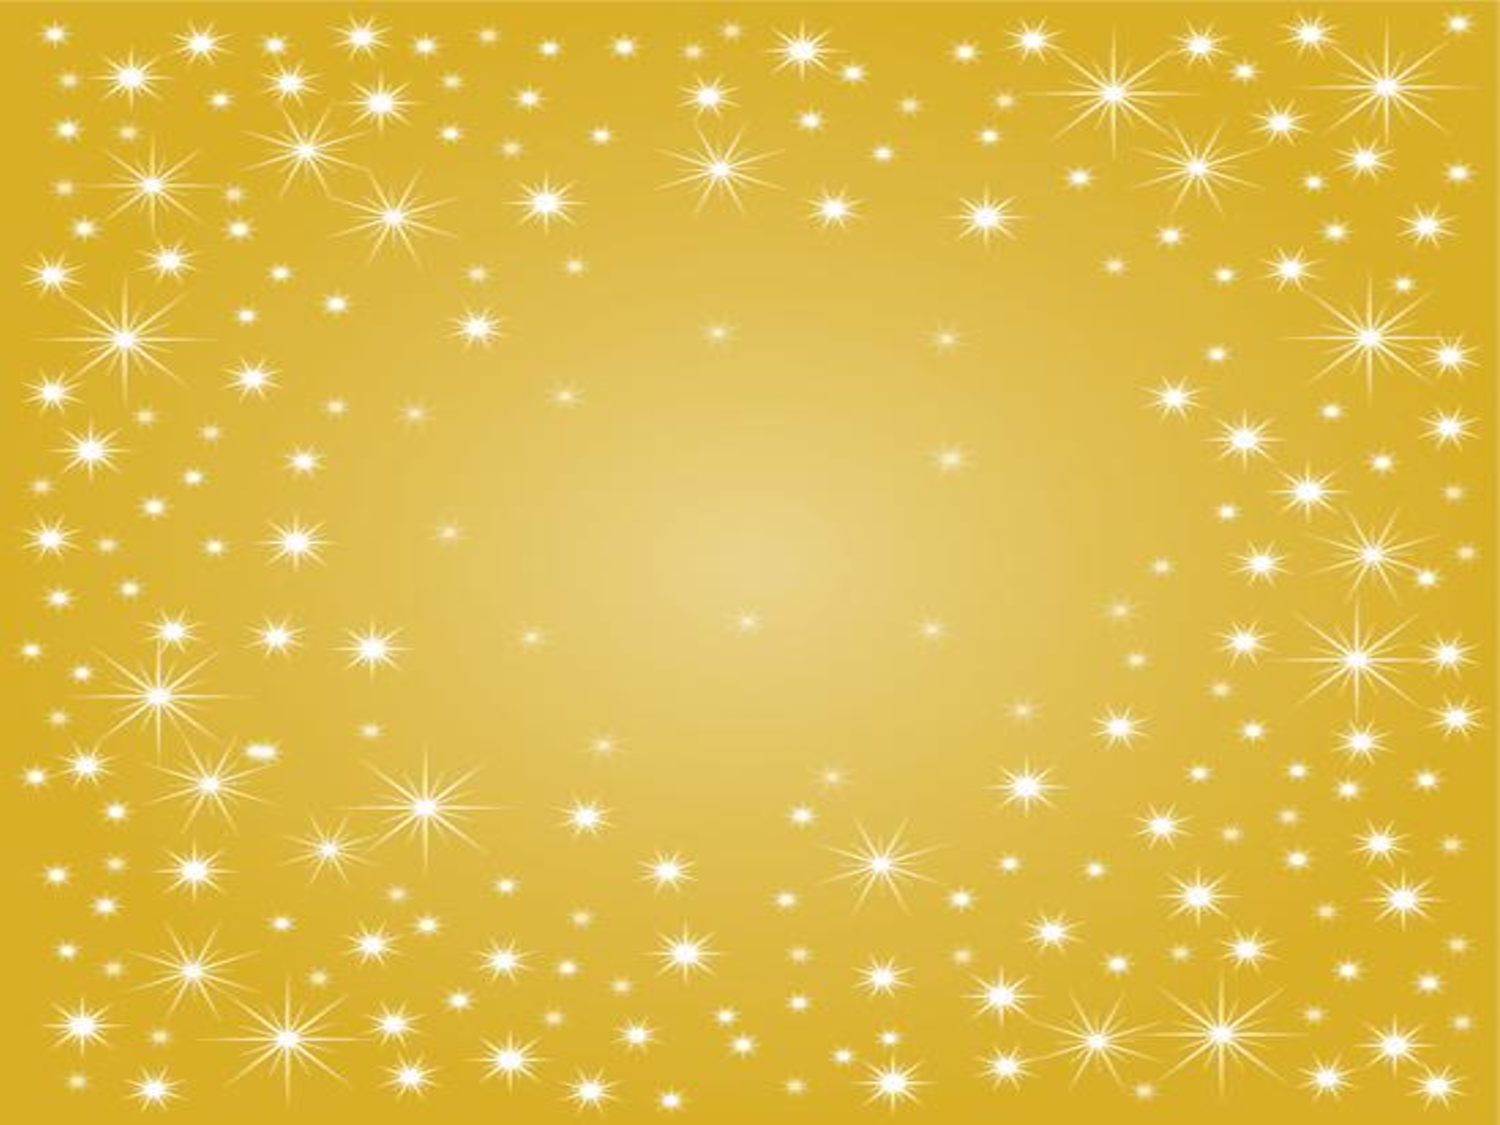 Gold star wallpaper wallpapersafari powerpoint template gold sparkle background by misspowerpoint 1500x1125 toneelgroepblik Images